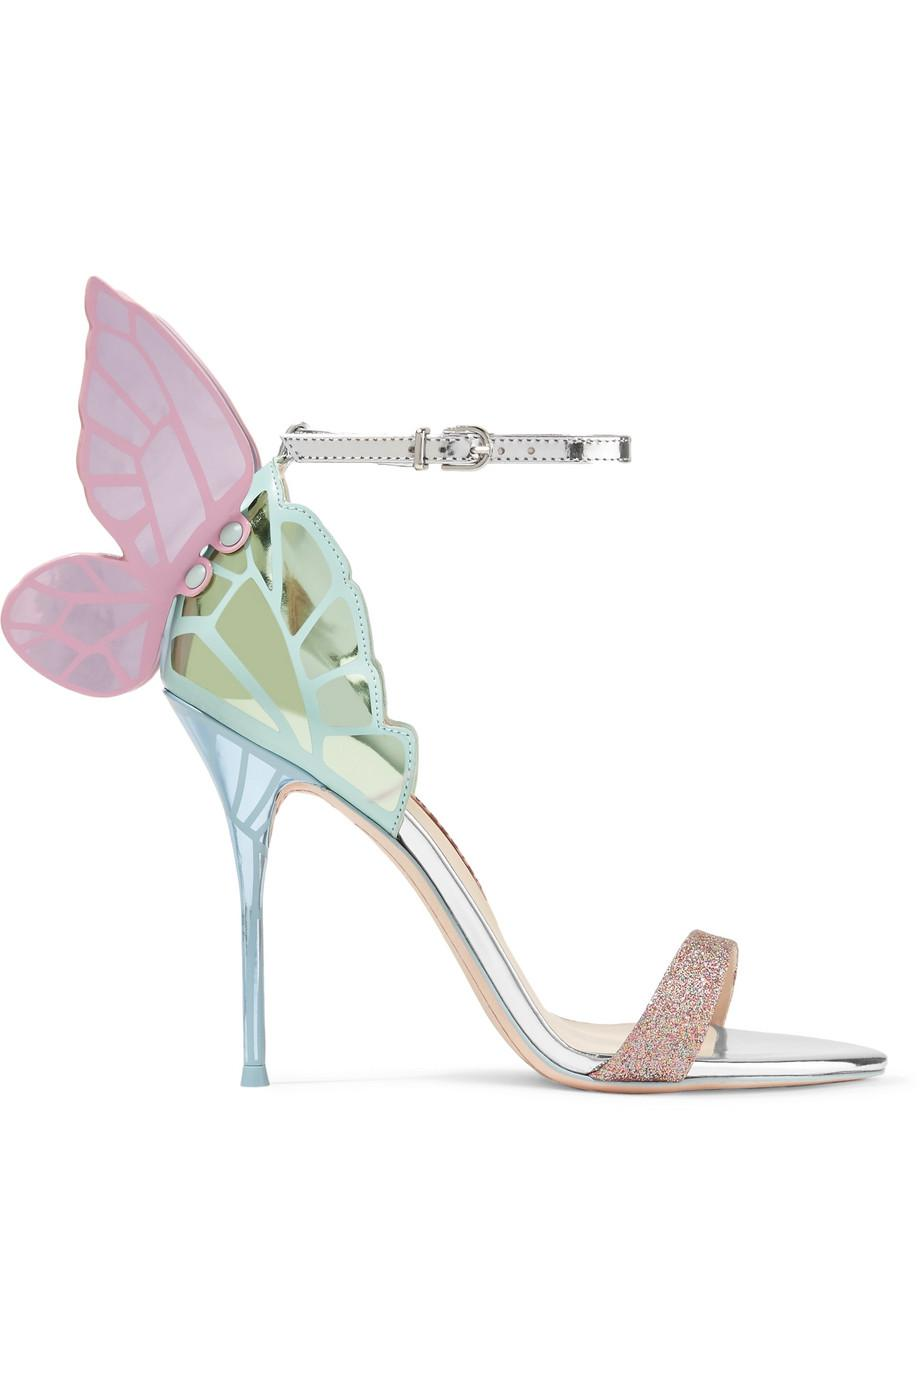 Chiara Embroidered Satin And Metallic Leather Sandals - Silver Sophia Webster Outlet Very Cheap Outlet Store Locations Cheap Sale Exclusive Cheap Classic Authentic Online cqdFB9K50